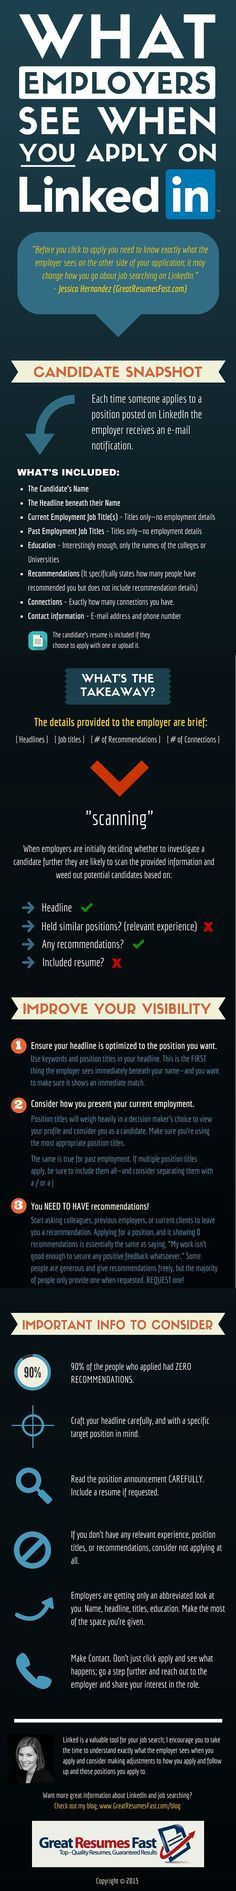 Cover Letter Outline, Cover Letter Tips | Cover Letter | Pinterest ...